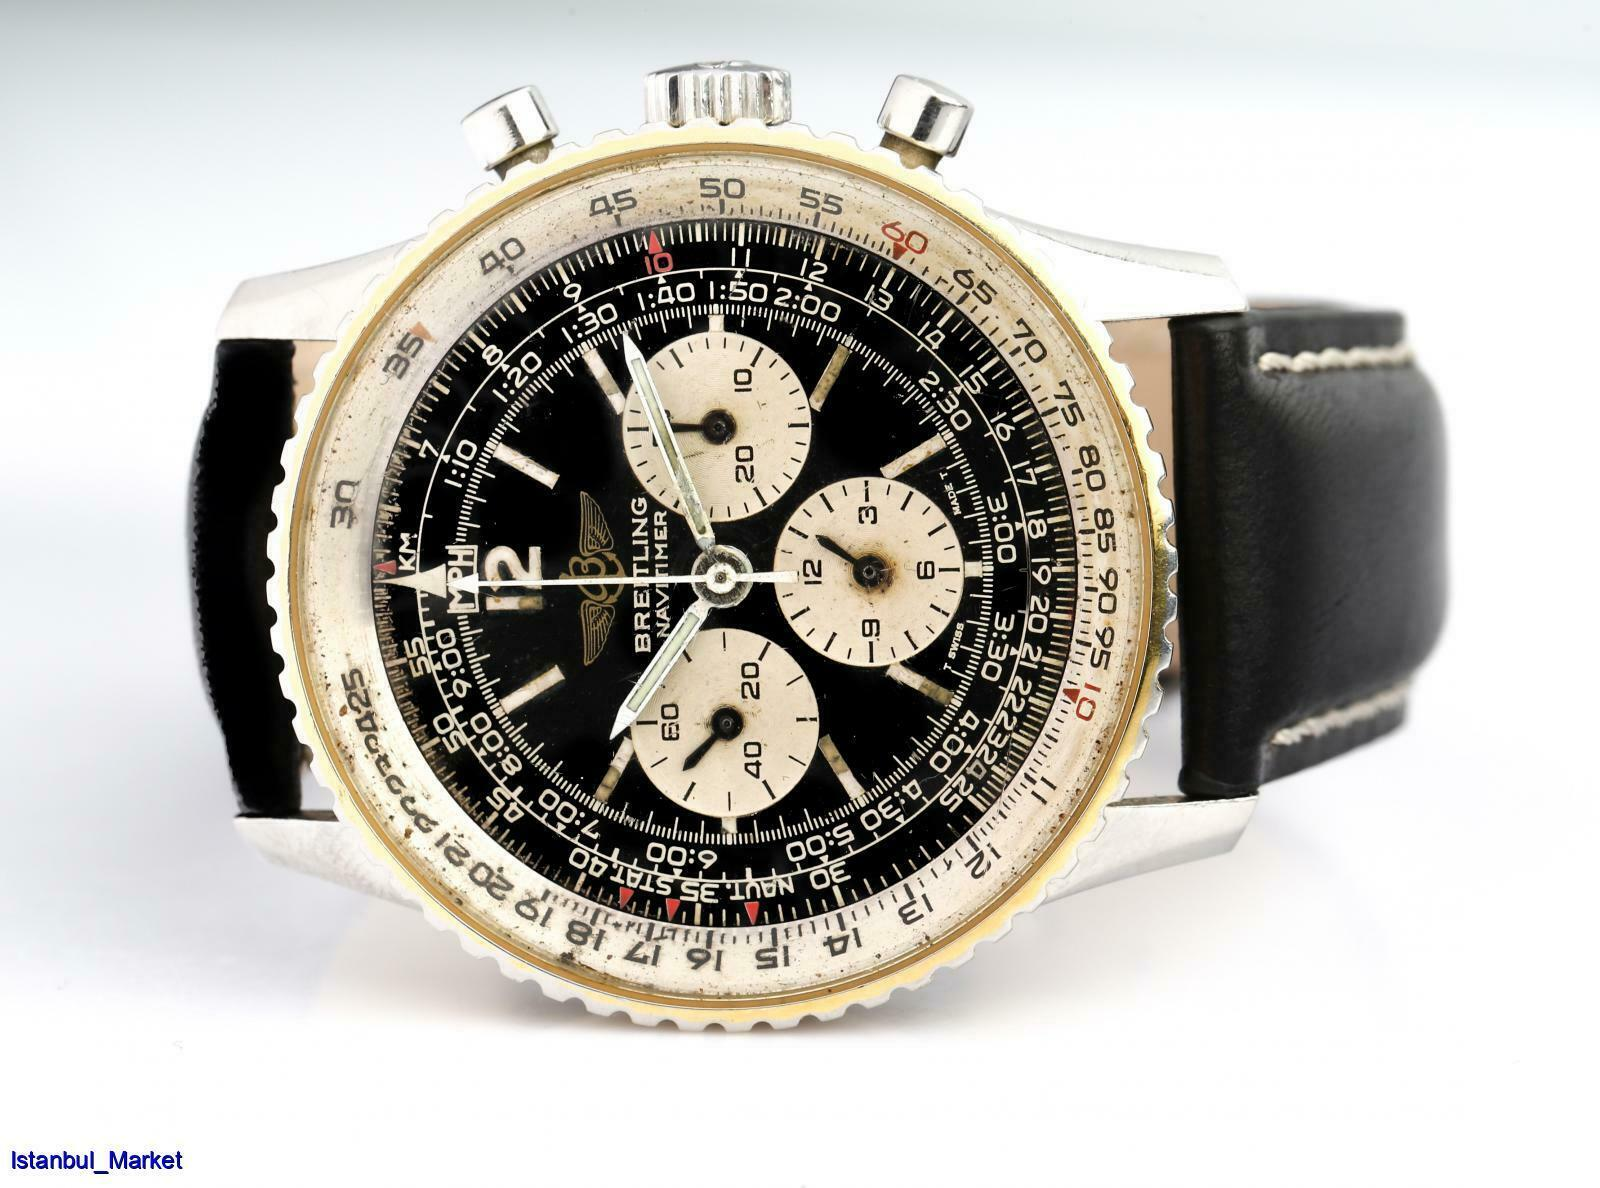 BREITLING Navitimer Vintage Ref#81600 Manual Winding Chronograph 80's Wristwatch - watch picture 1